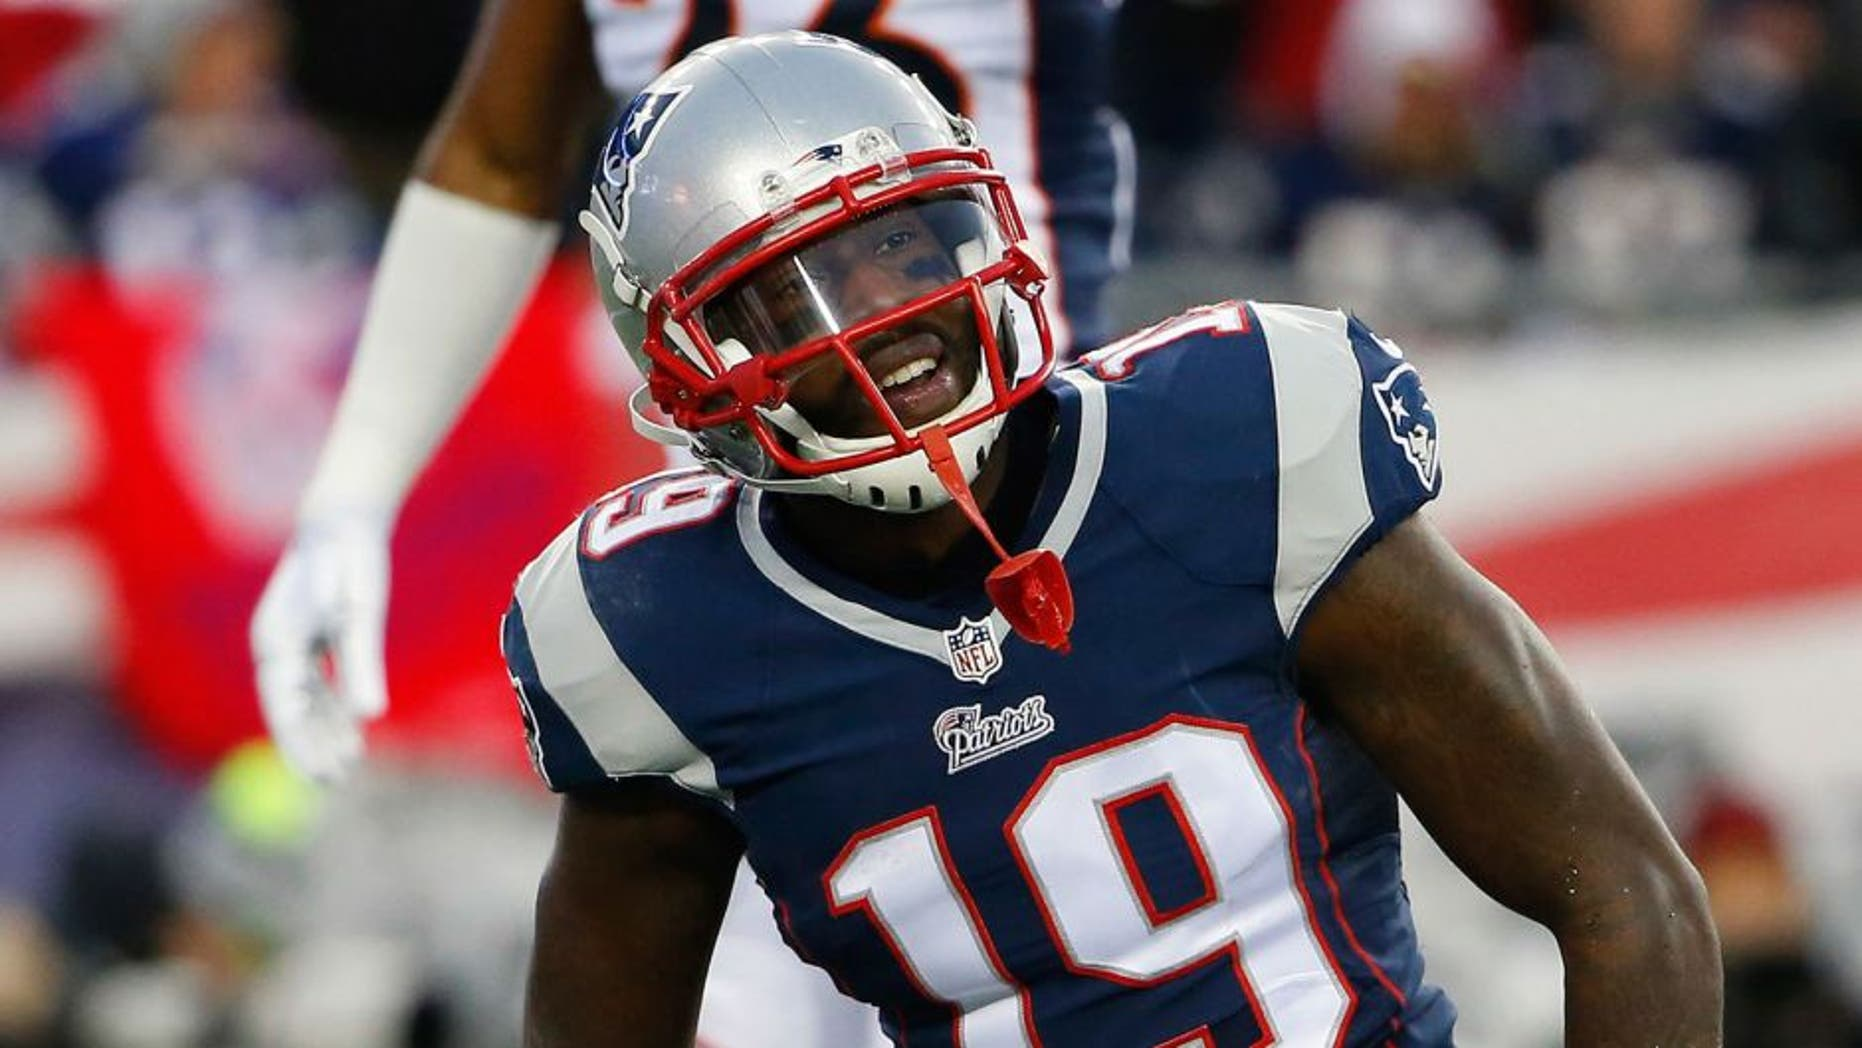 Nov 2, 2014; Foxborough, MA, USA; New England Patriots wide receiver Brandon LaFell (19) smiles during the first quarter against the Denver Broncos at Gillette Stadium. Mandatory Credit: Winslow Townson-USA TODAY Sports